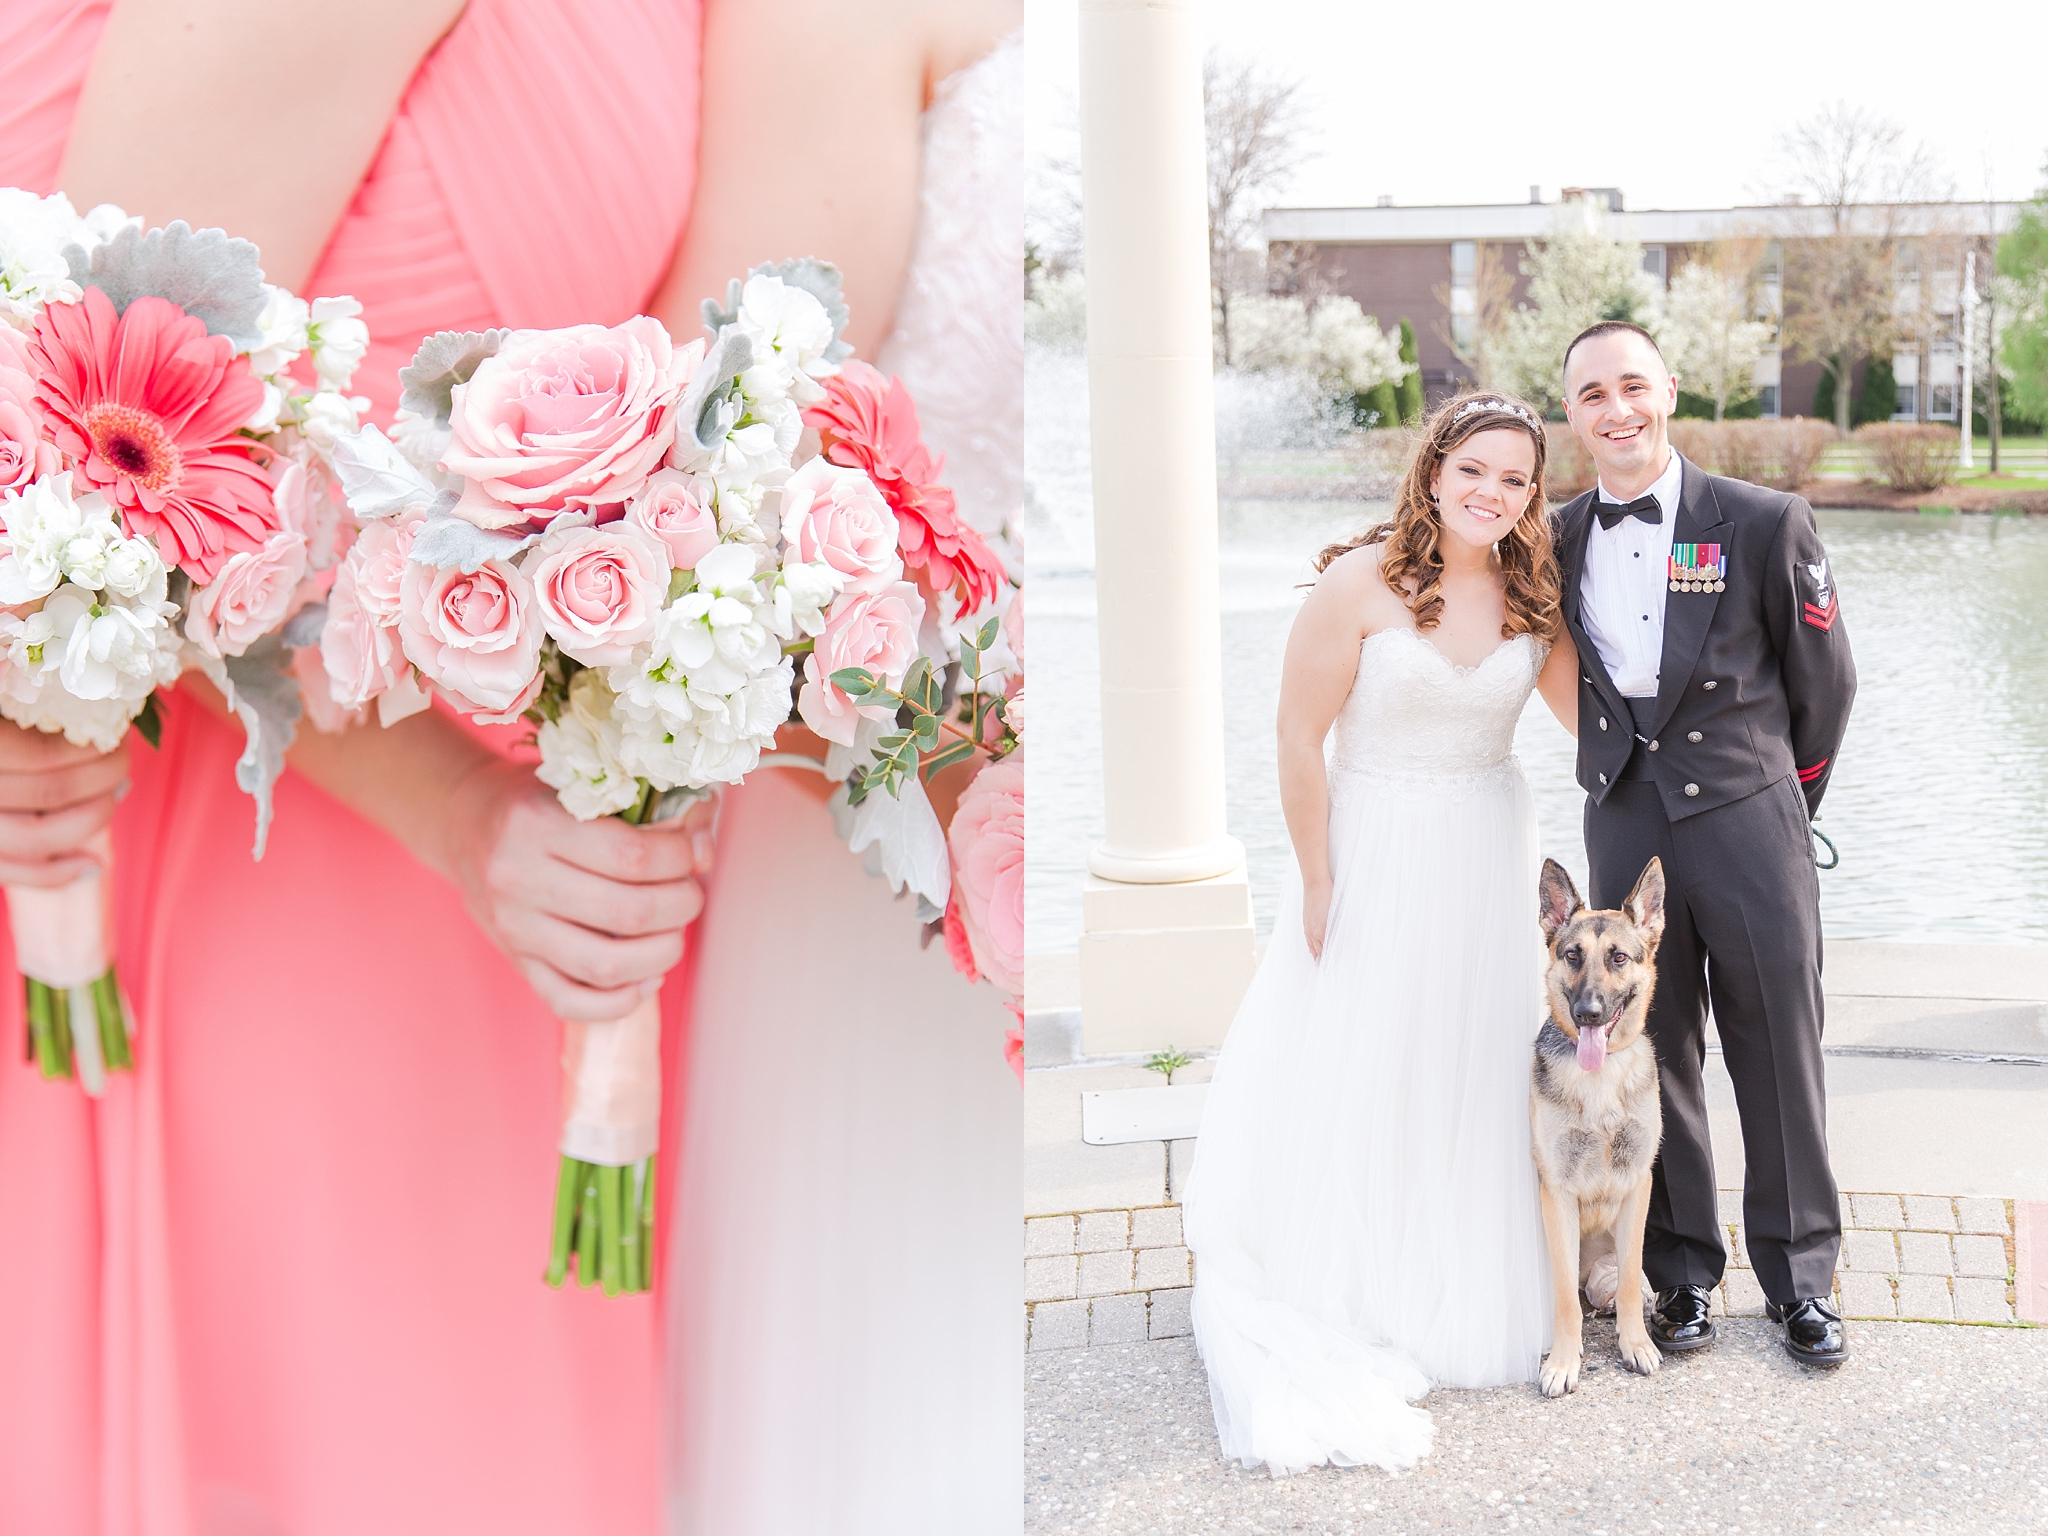 romantic-artful-candid-wedding-photos-in-st-clair-shores-at-the-white-house-wedding-chapel-by-courtney-carolyn-photography_0036.jpg